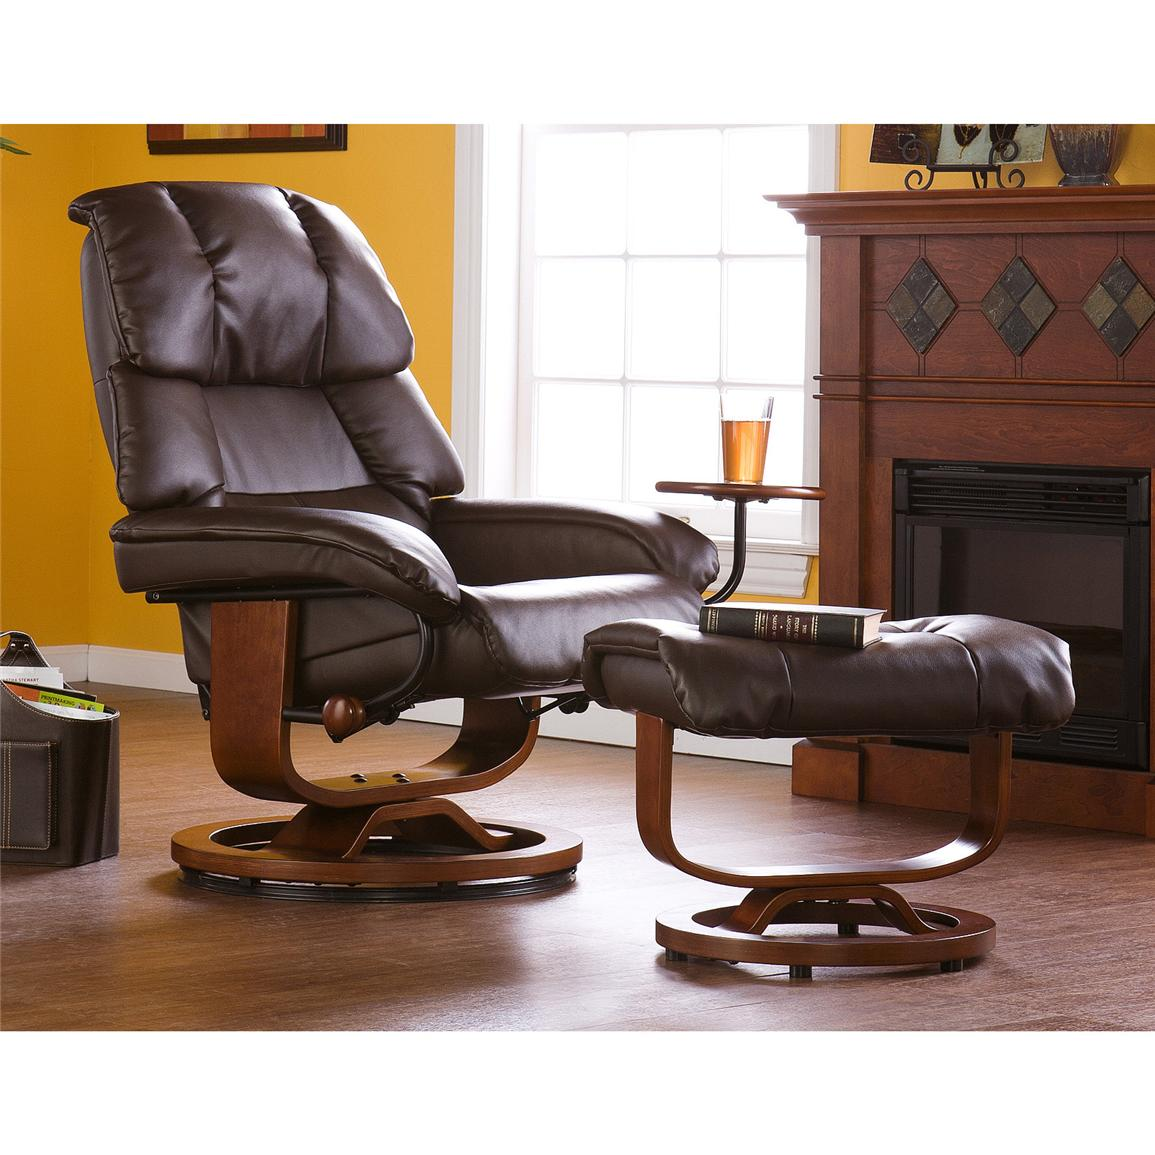 Canyon Lake Leather Recliner and Ottoman, Cafe Brown